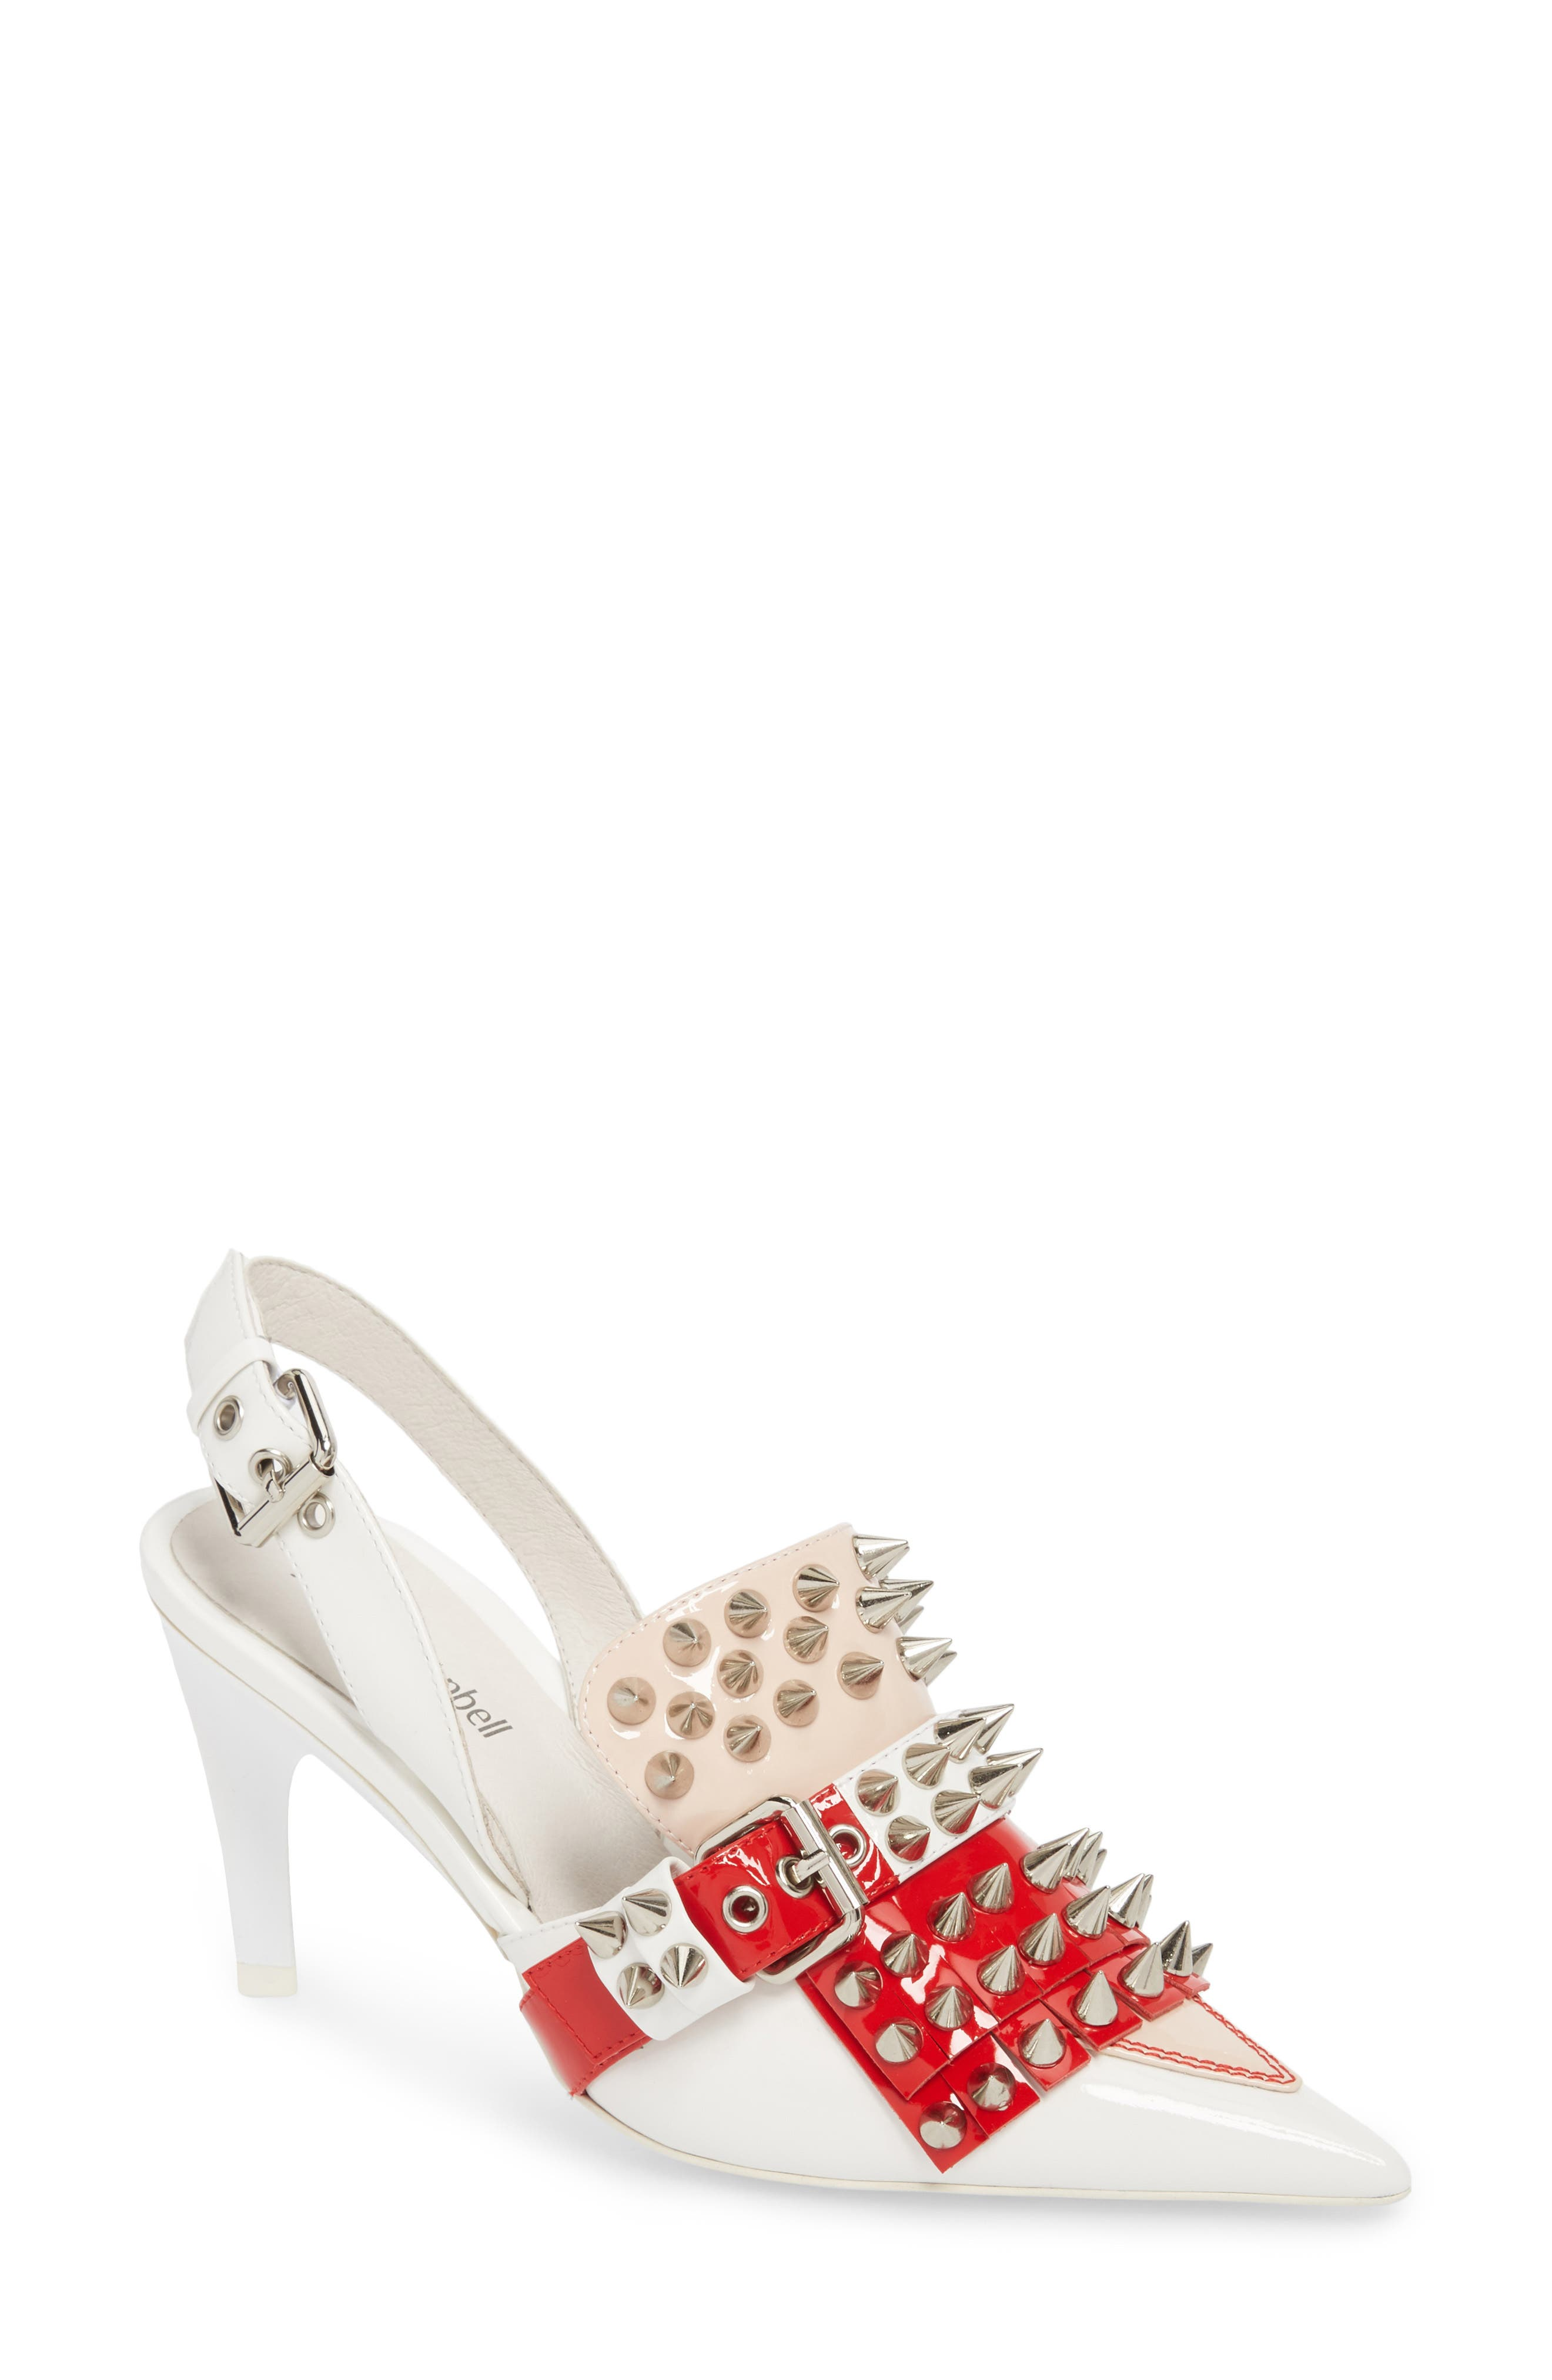 Vicious-2 Studded Loafer Pump,                         Main,                         color, WHITE/ RED/ PINK PATENT/ WHITE